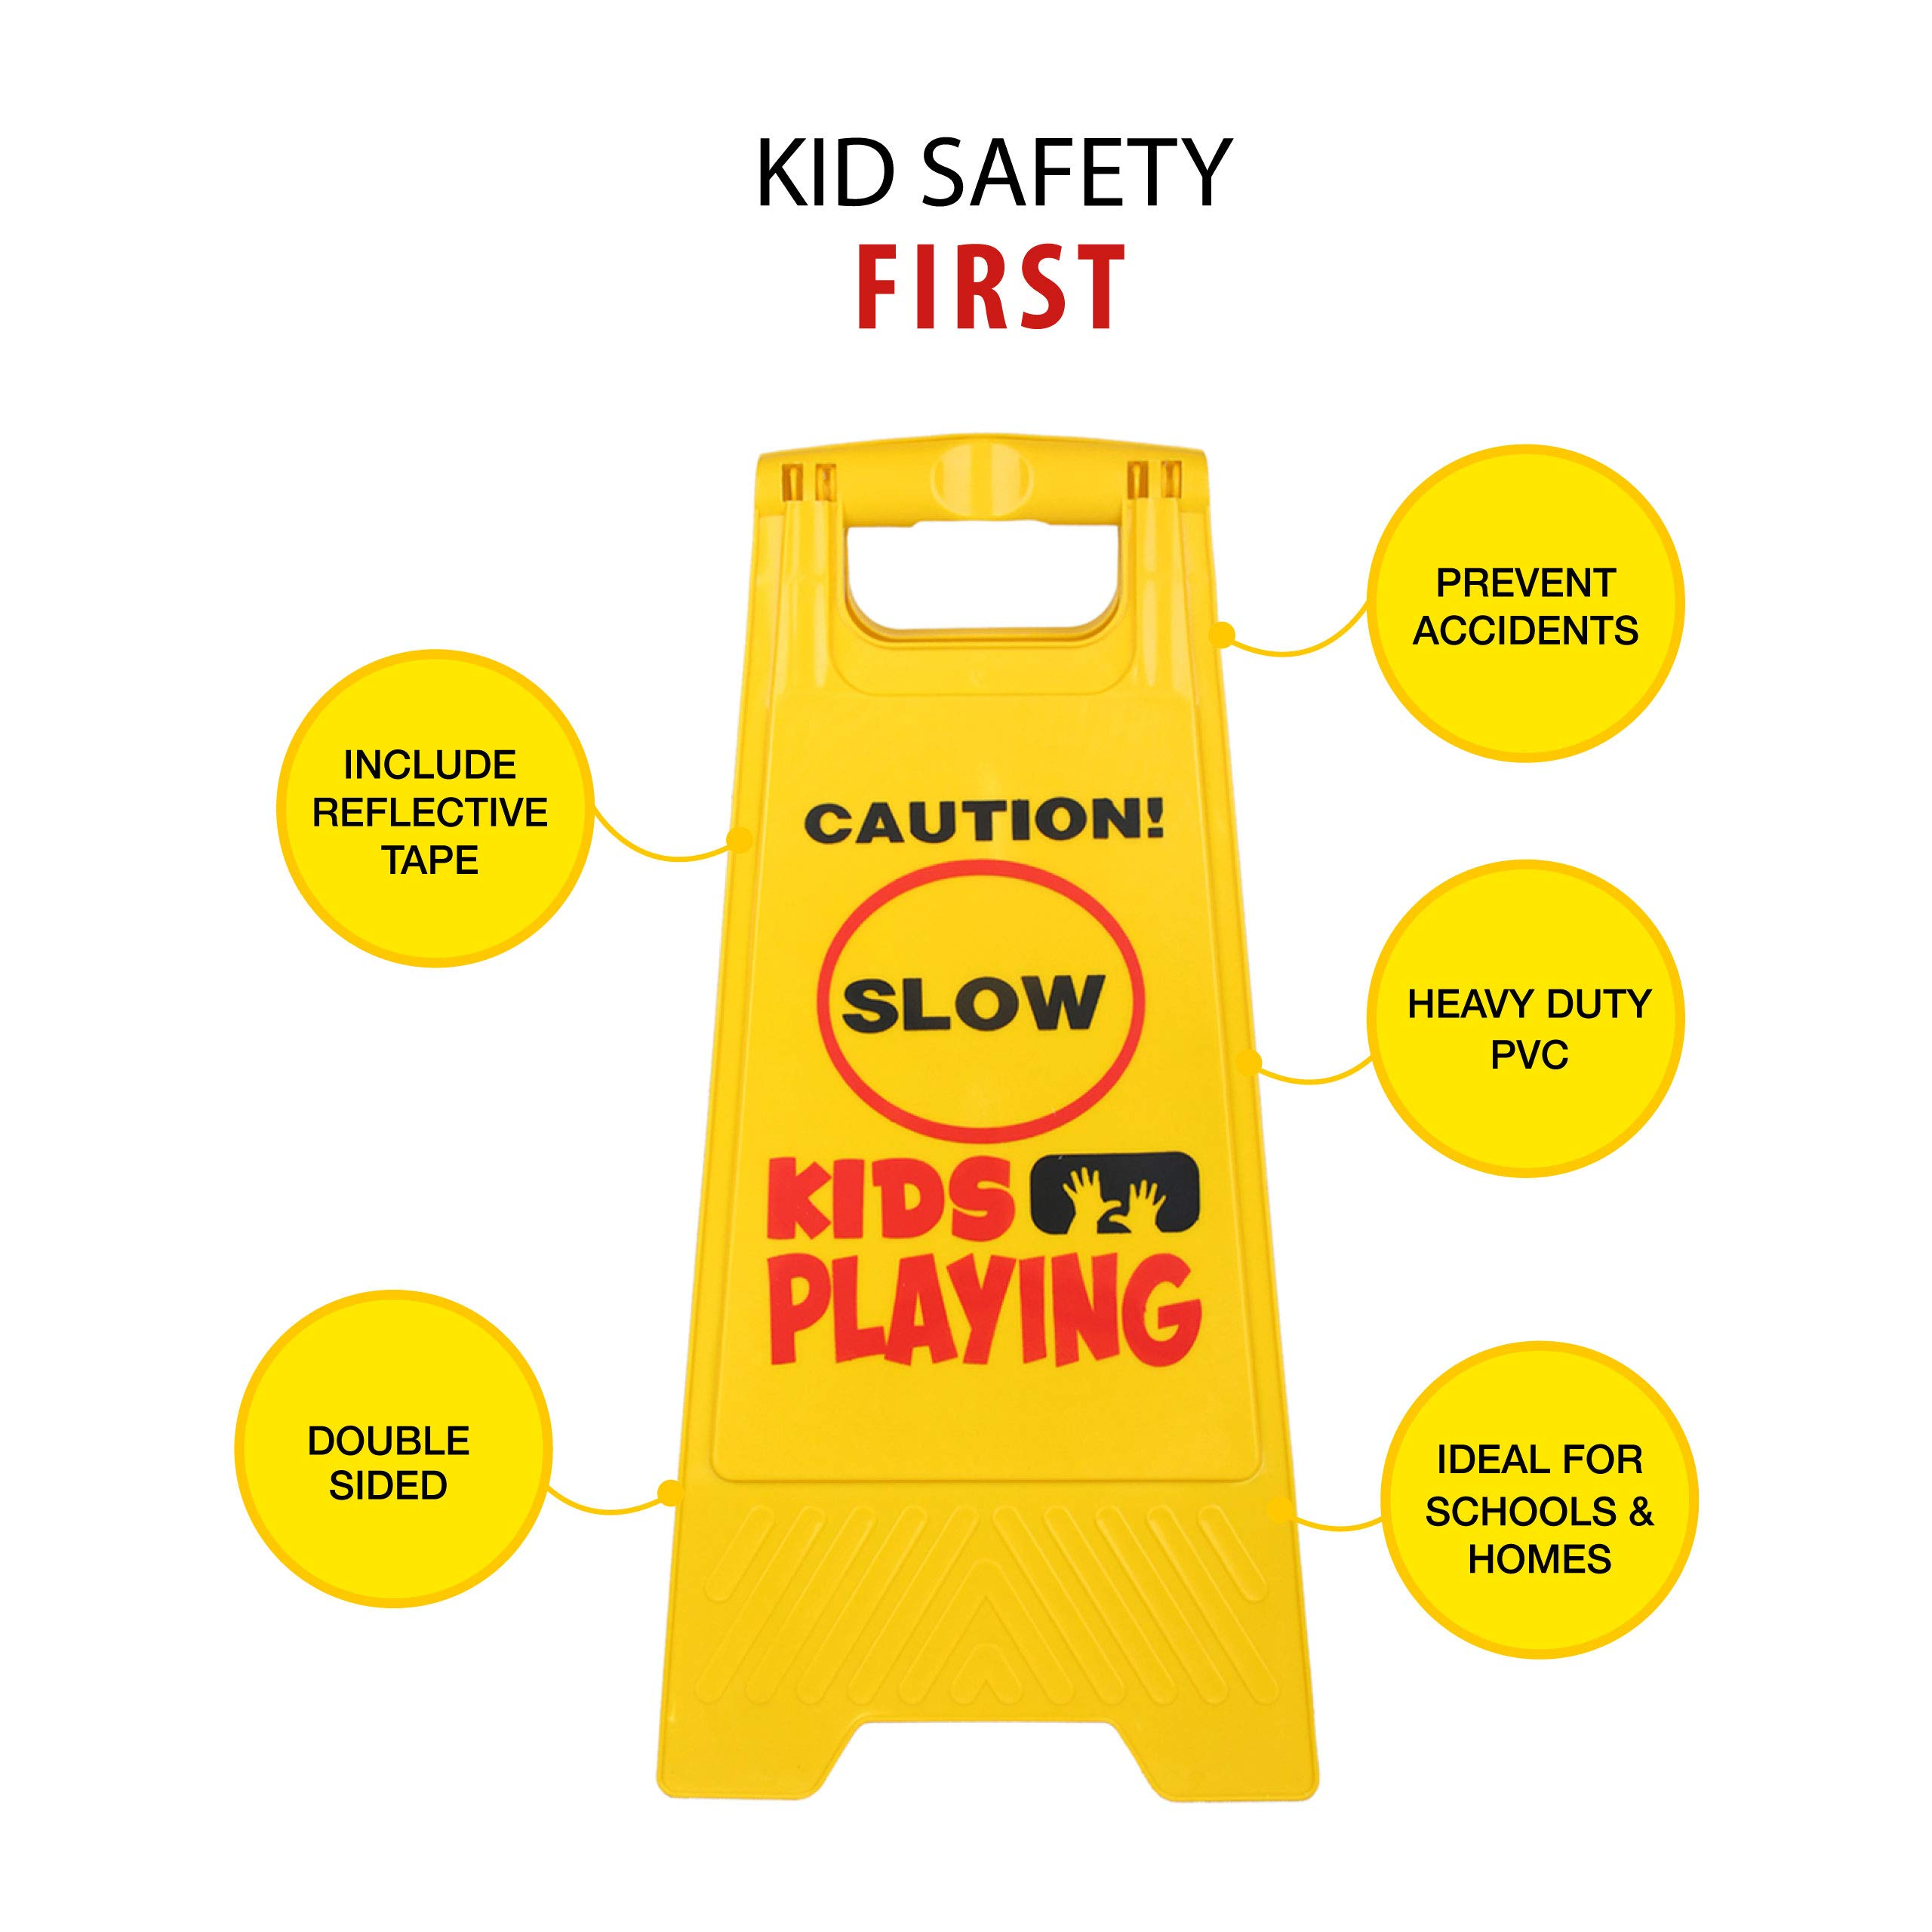 Kid Playing Caution Sign – Children Safety Slow Road Yard Sign - Double Sided Sign Bundled with Reflective Tape by Budgetizer (Image #2)